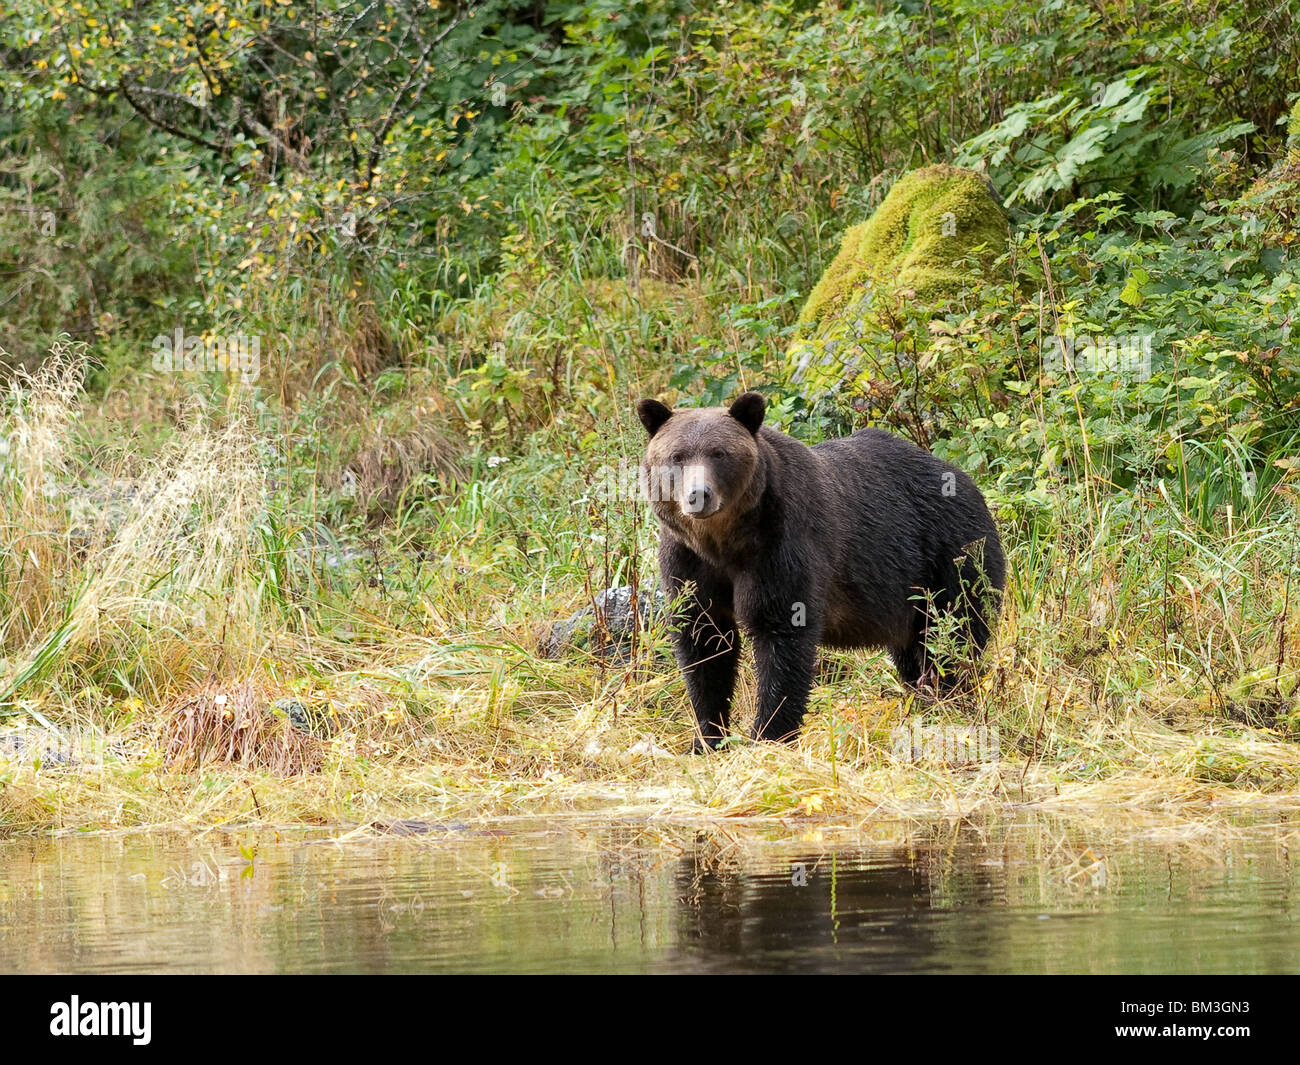 Grizzly bear, Ursus arctos horribilis, standing on the riverside Stock Photo